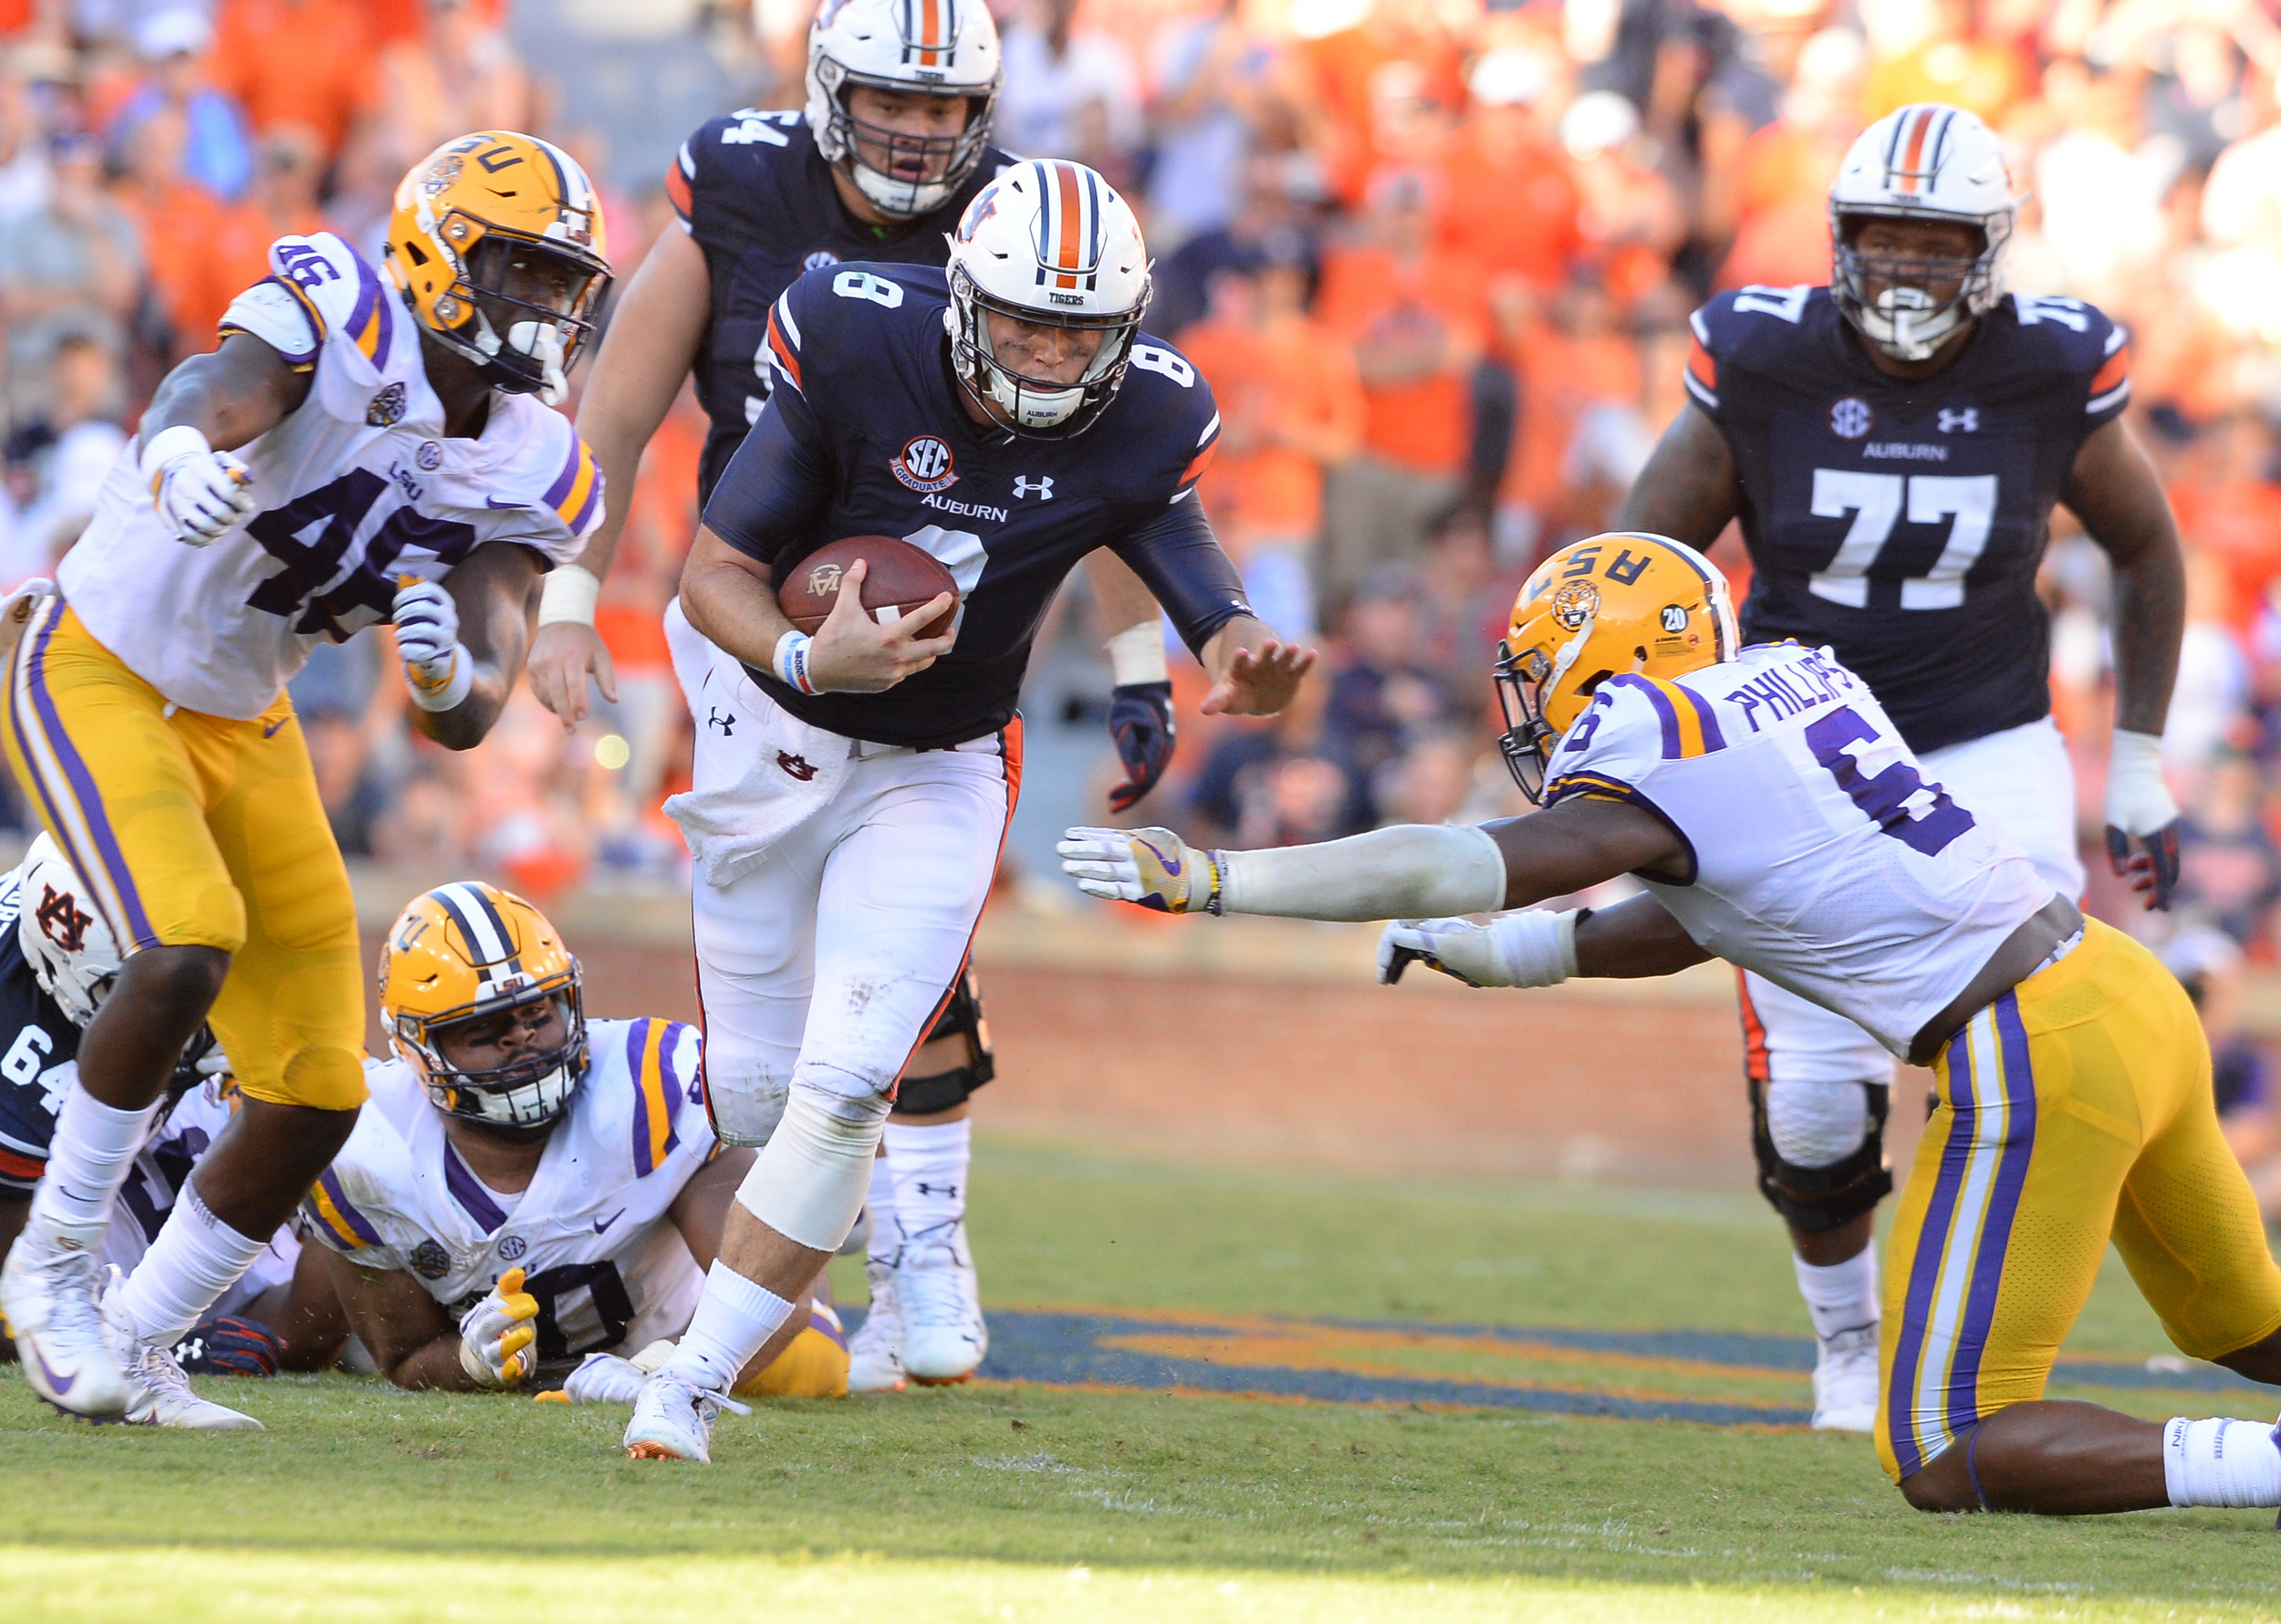 LSU Tigers linebackers Andre Anthony (46) and Jacob Phillips (6) close in on Auburn Tigers quarterback Jarrett Stidham (8) during the second half of Saturday's game, at Jordan Hare Stadium in Auburn. (Contributed by Jeff Johnsey)